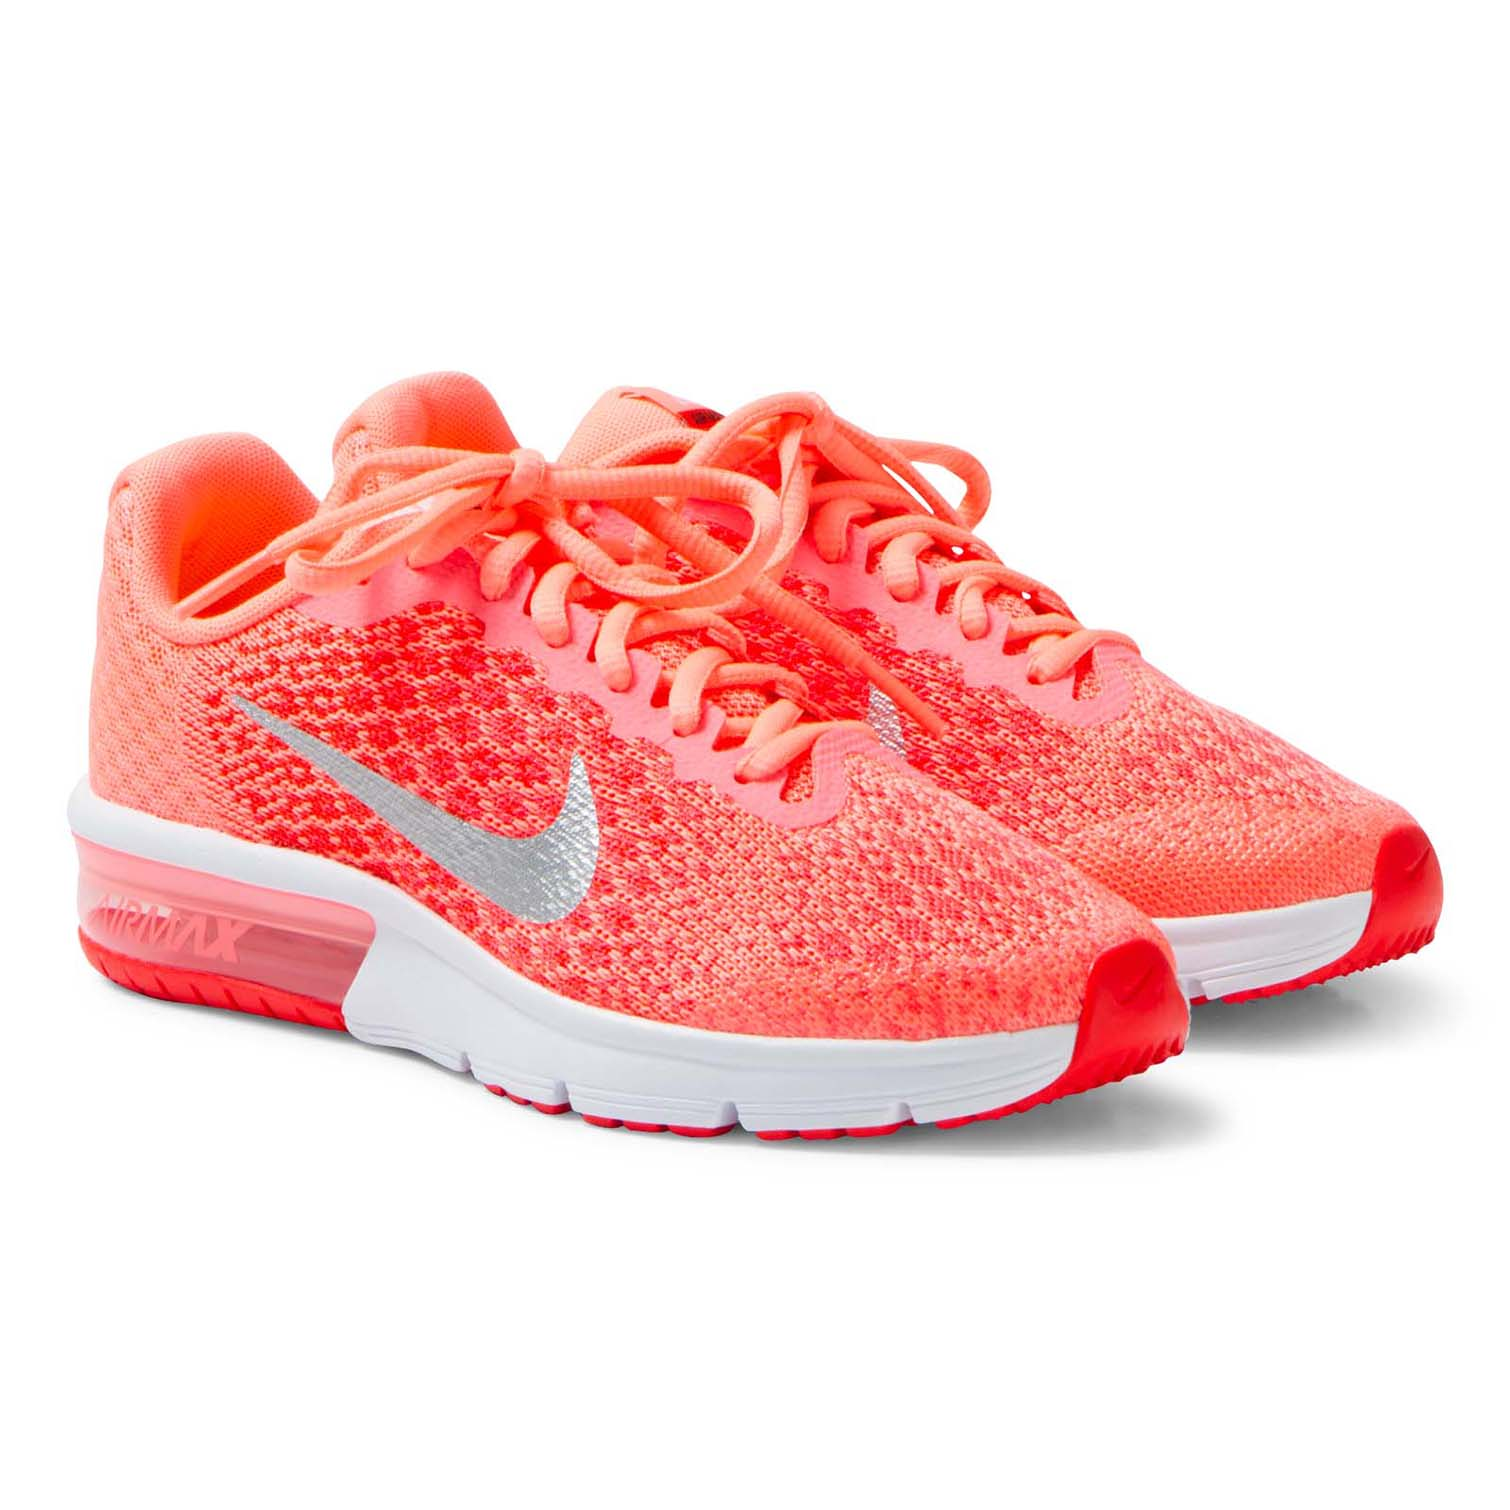 super popular 2b0e5 0da23 Nike Coral Air Max Sequent 2 Junior Trainers   AlexandAlexa